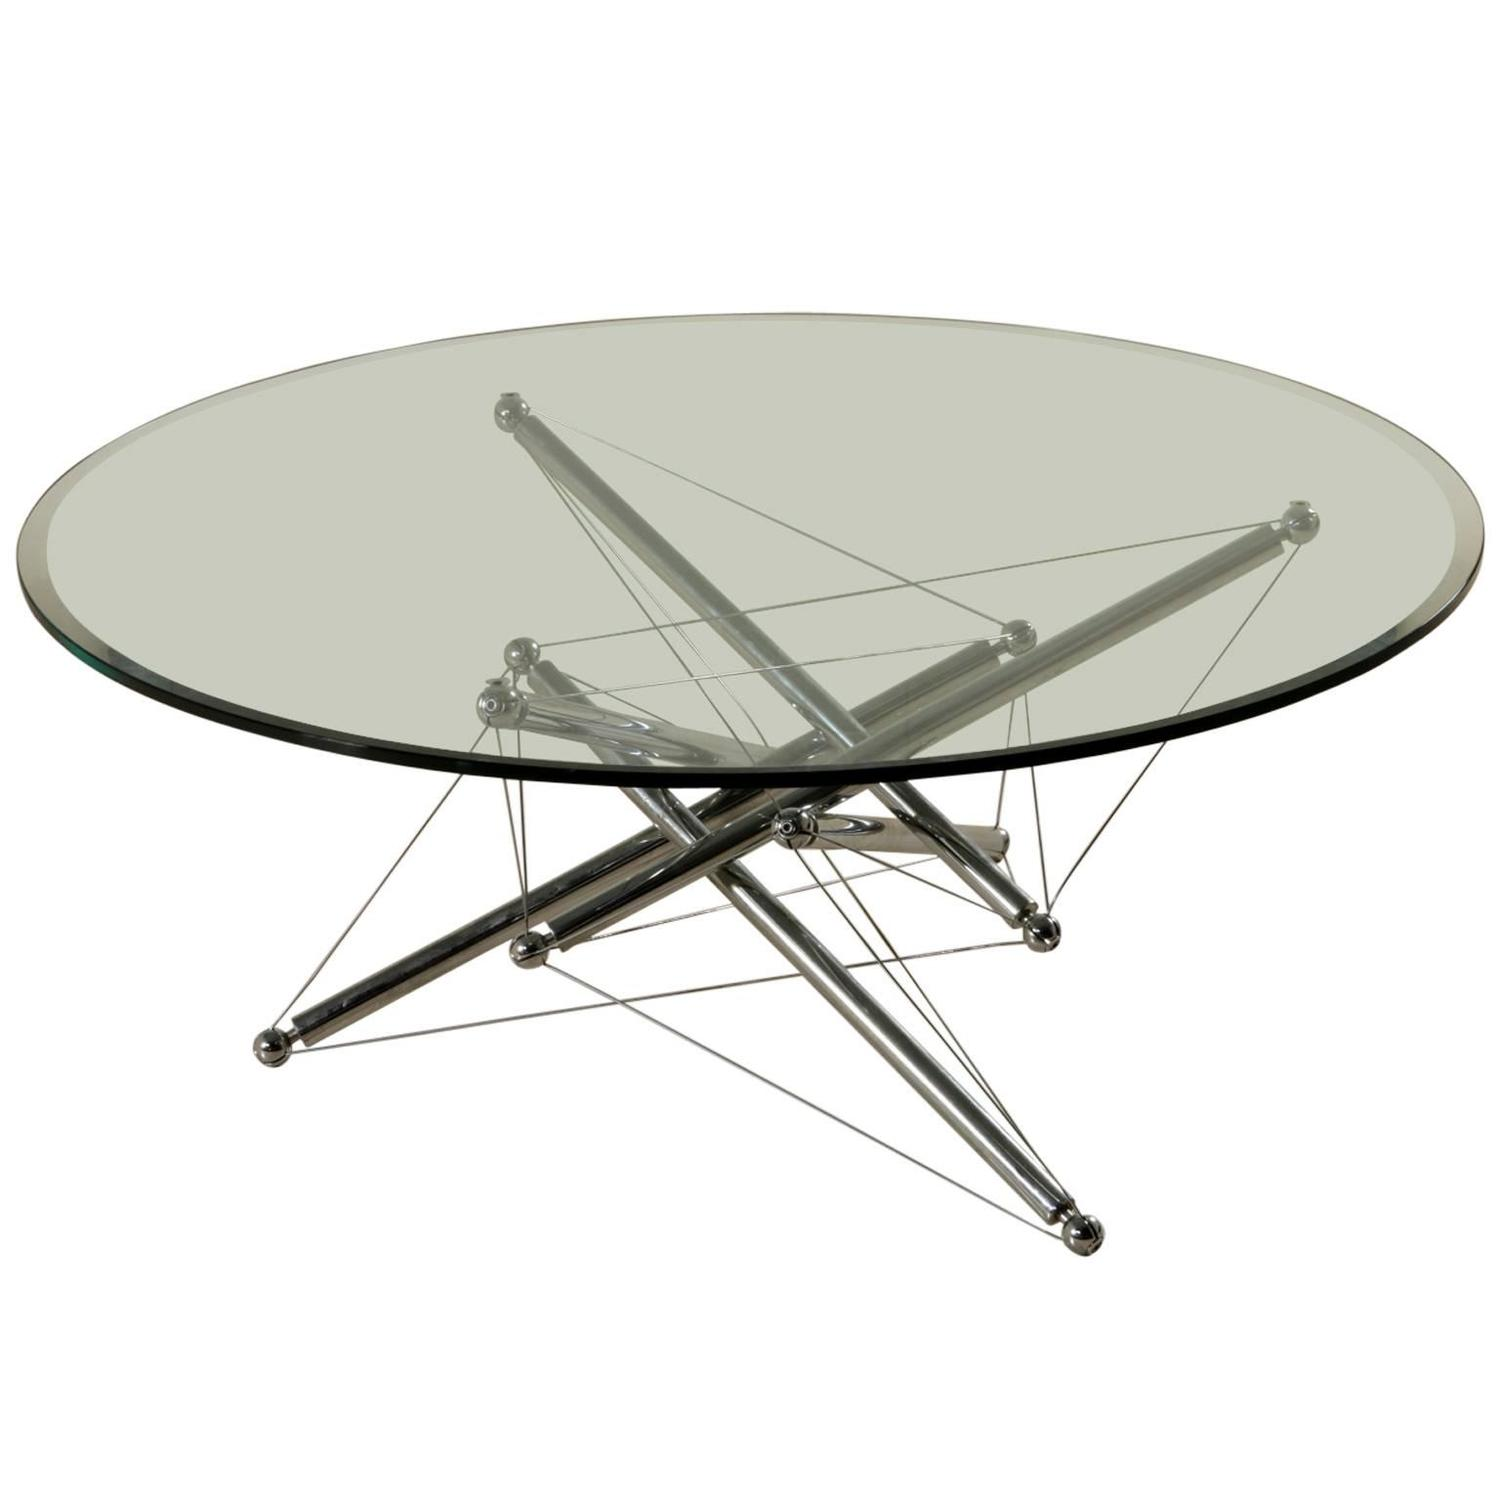 Glass And Chromed Metal Coffee Table By Waddel For Cassina Italy 1970s 1980s At 1stdibs